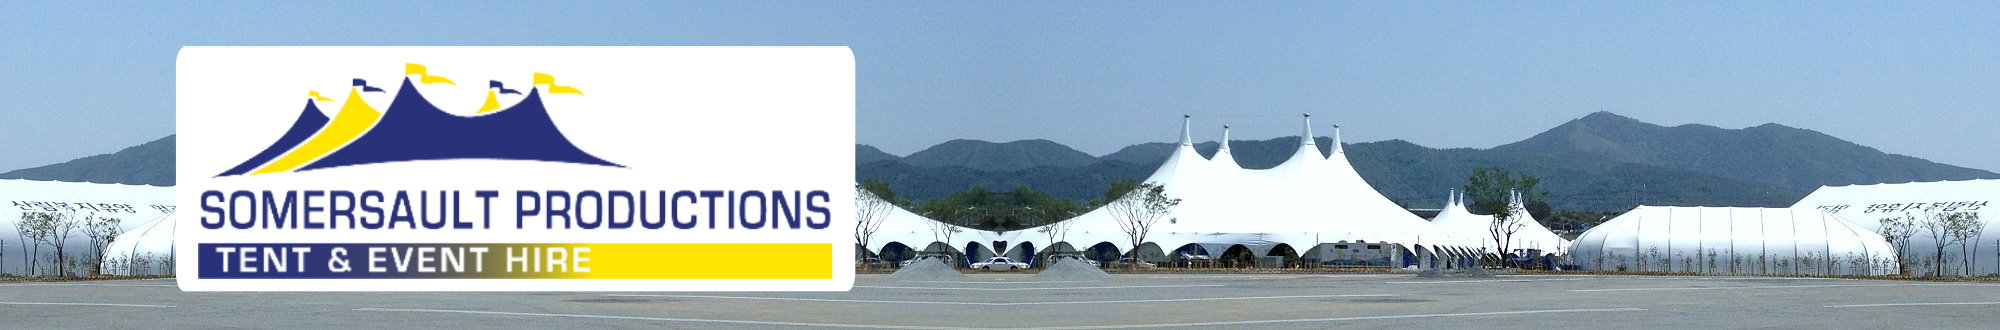 Tents in Korea